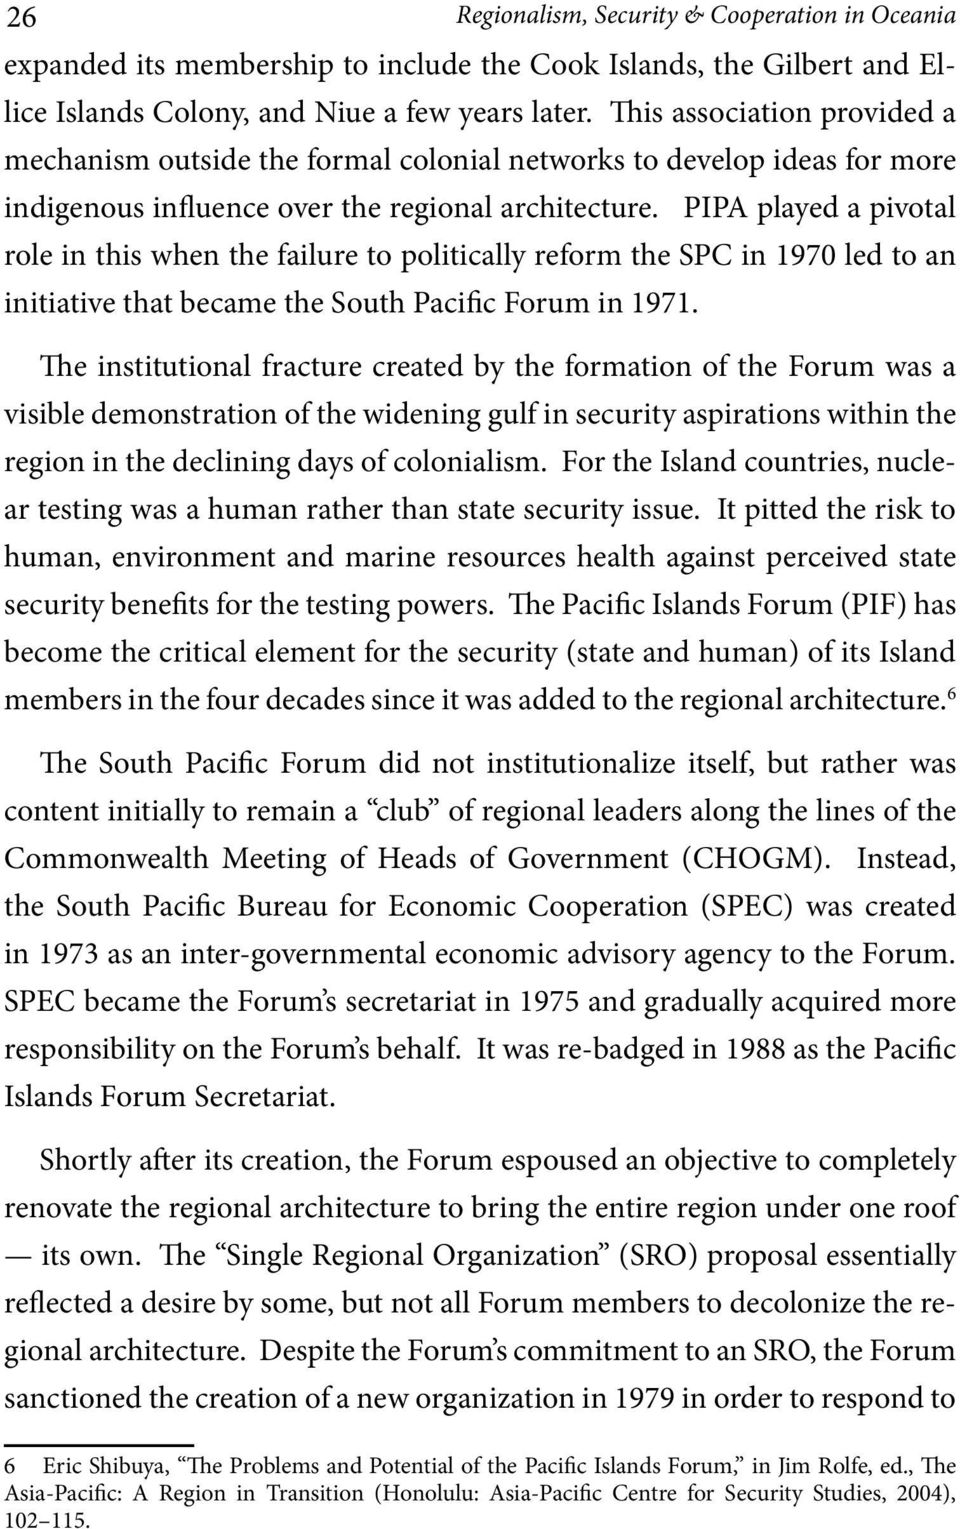 PIPA played a pivotal role in this when the failure to politically reform the SPC in 1970 led to an initiative that became the South Pacific Forum in 1971.